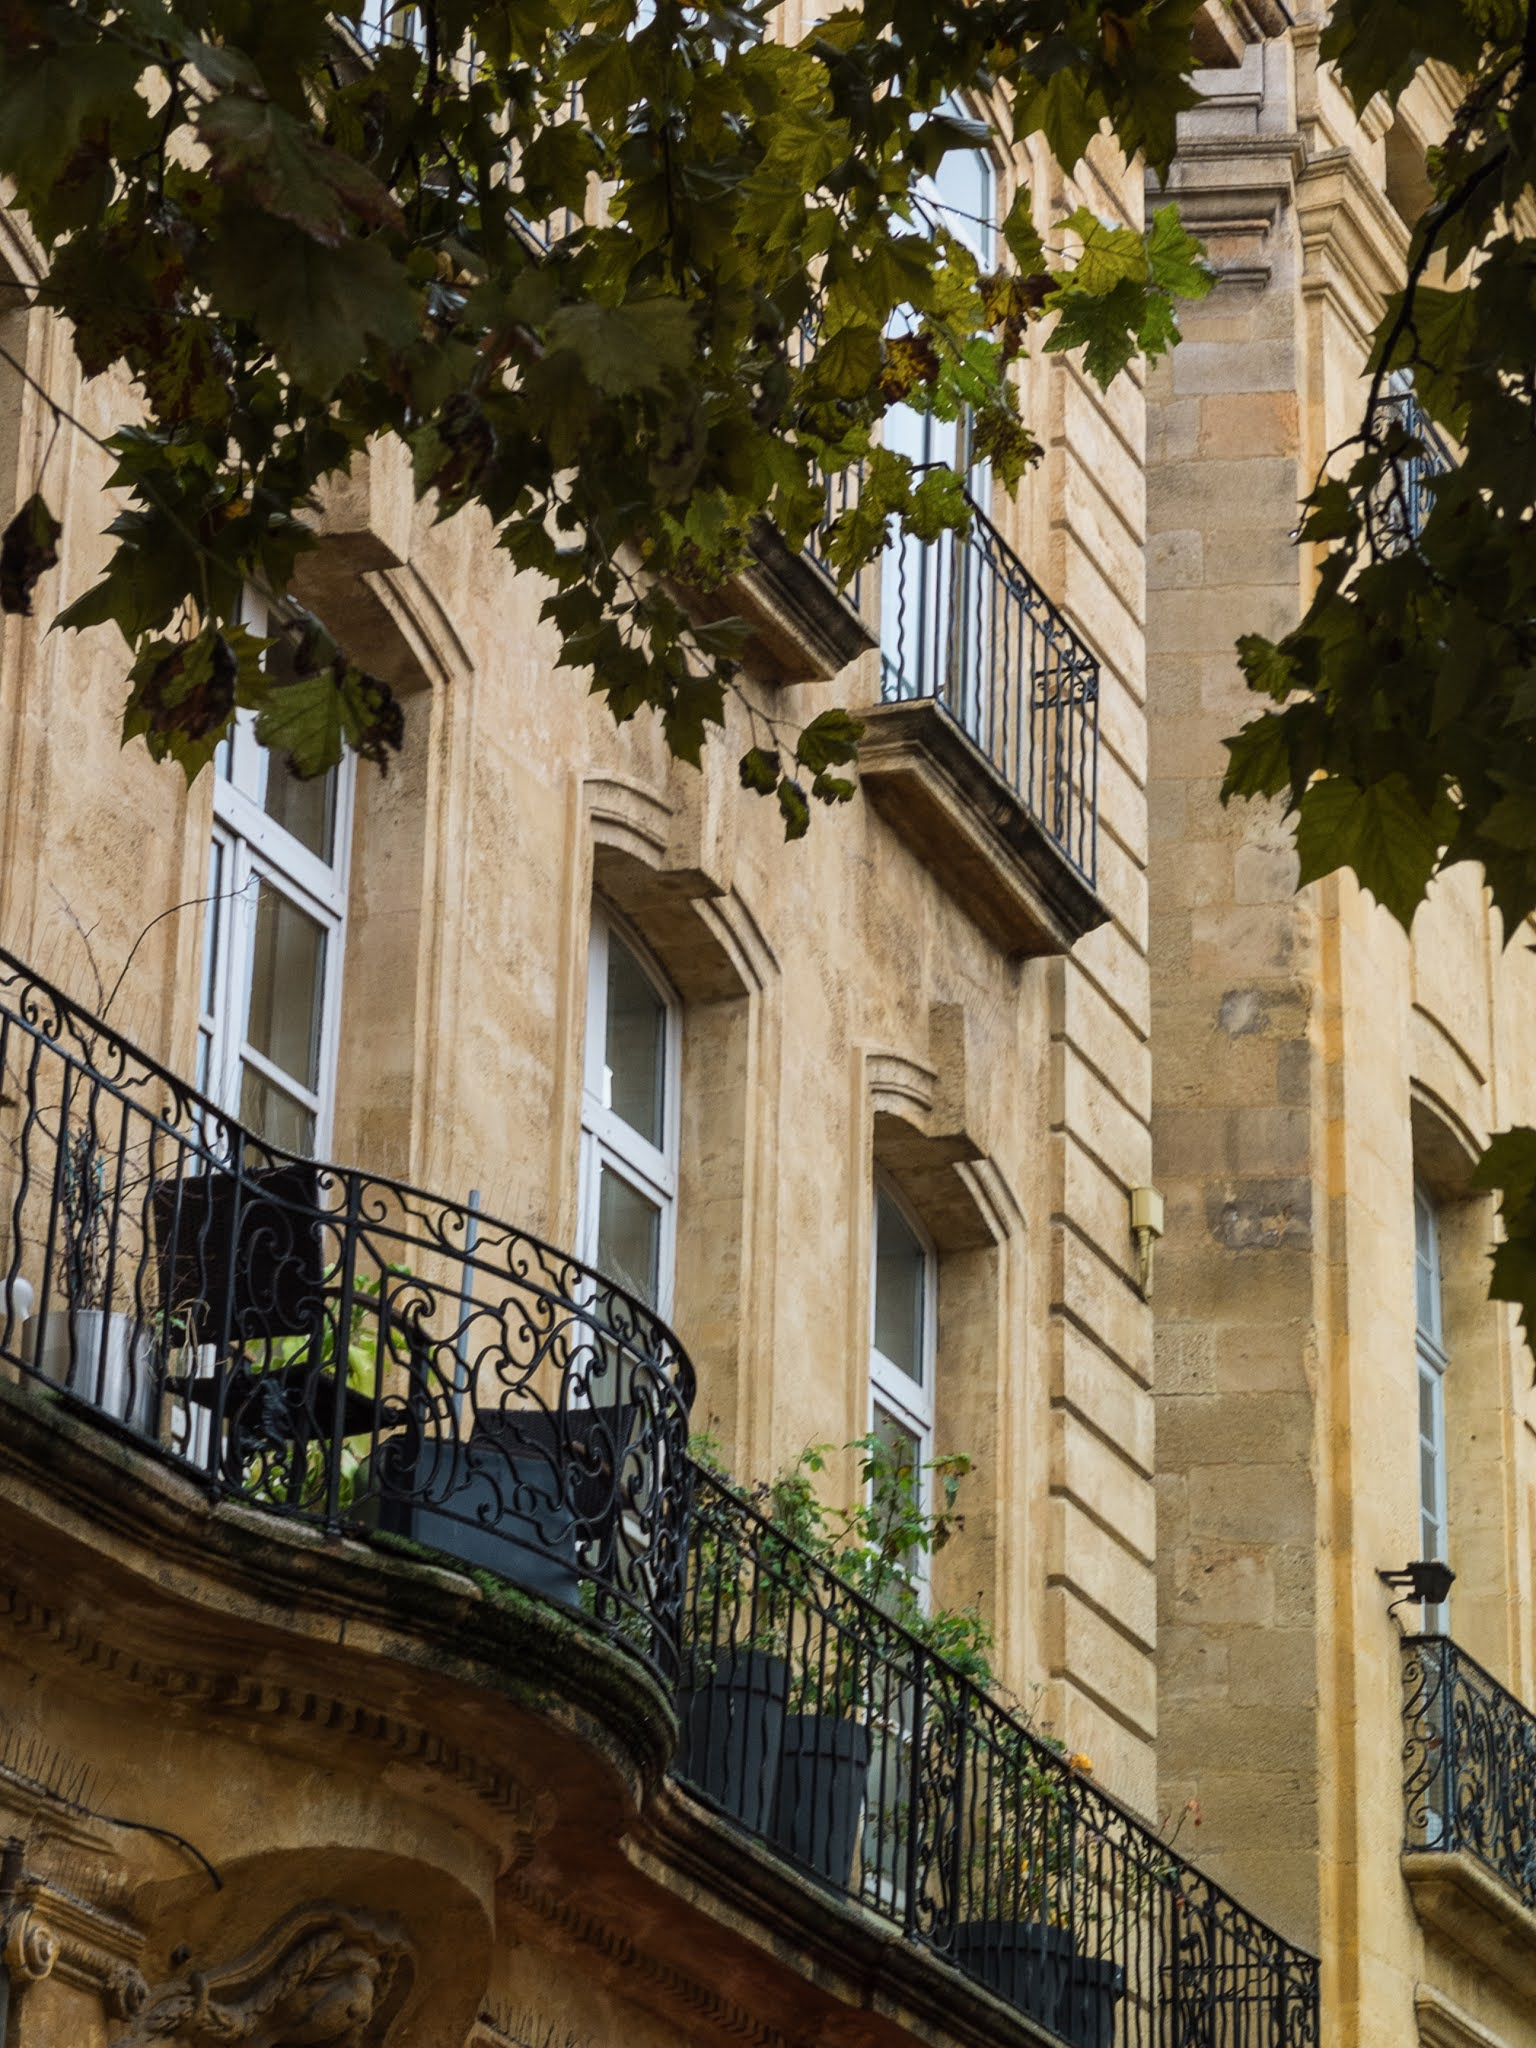 Looking up at tall windows and balconies from under a sycamore tree in Aix-en-Provence.